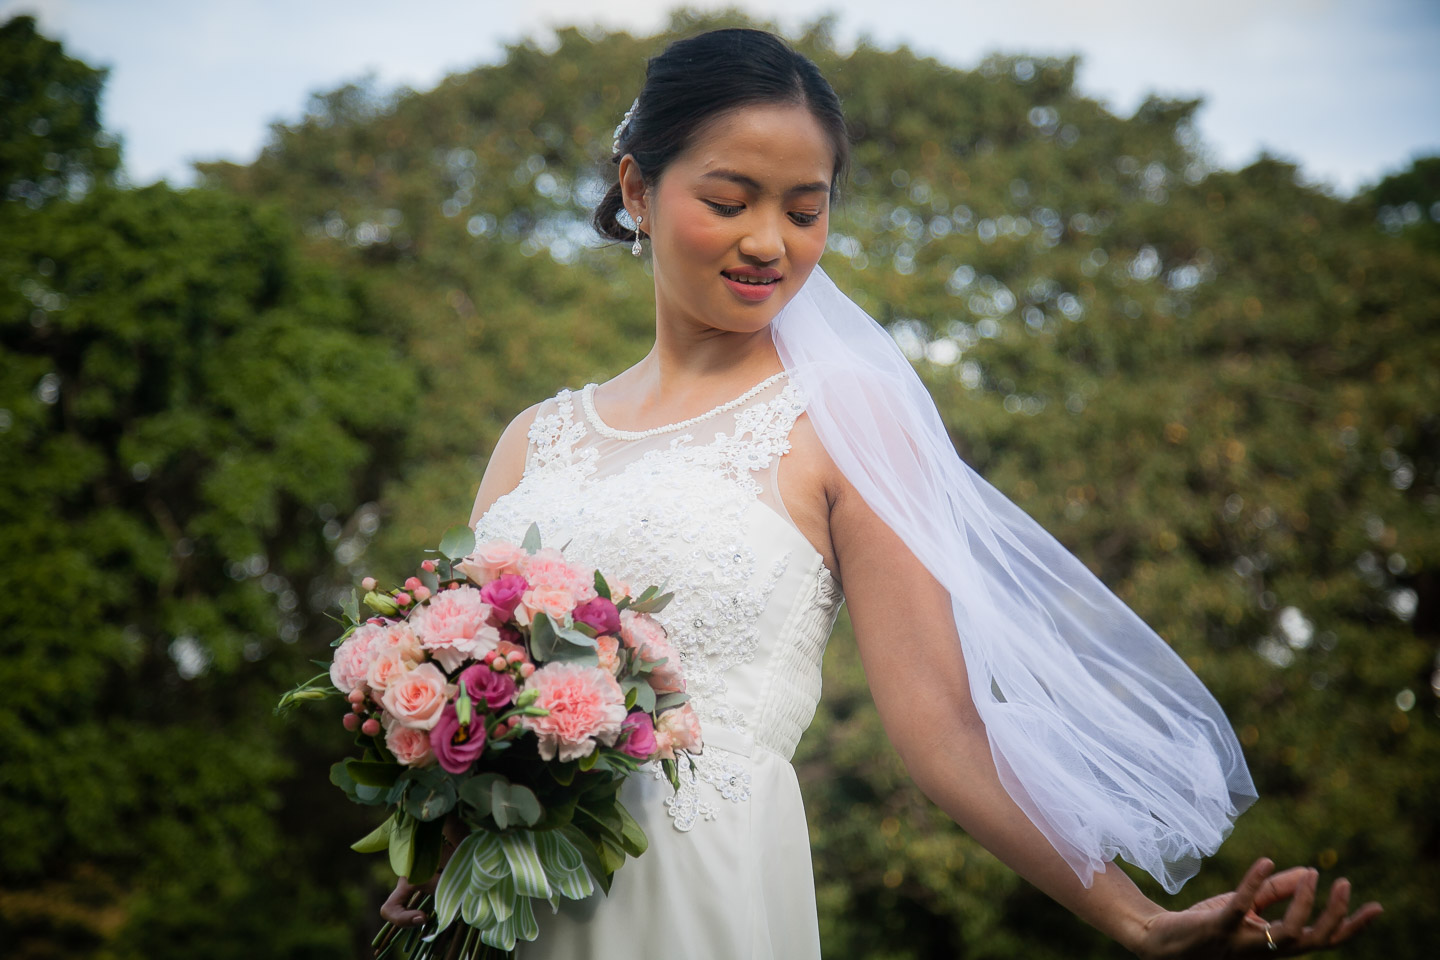 Wedding Gallery - Yve Lavine Photography | Photography for business